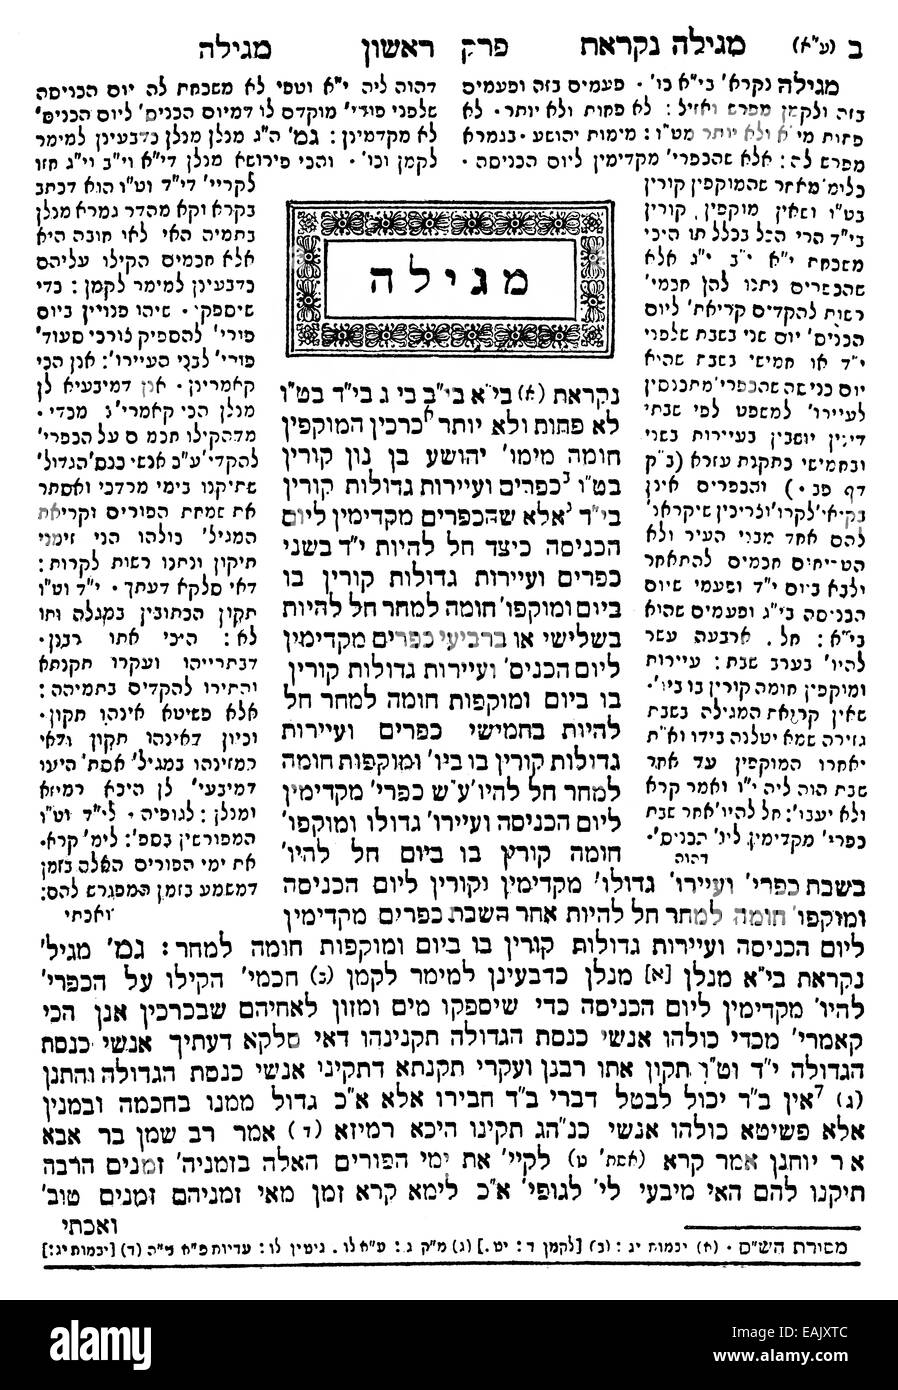 Babylonian Talmud, Mishnah, script from the collected religious legal traditions of Rabbinic Judaism - Stock Image